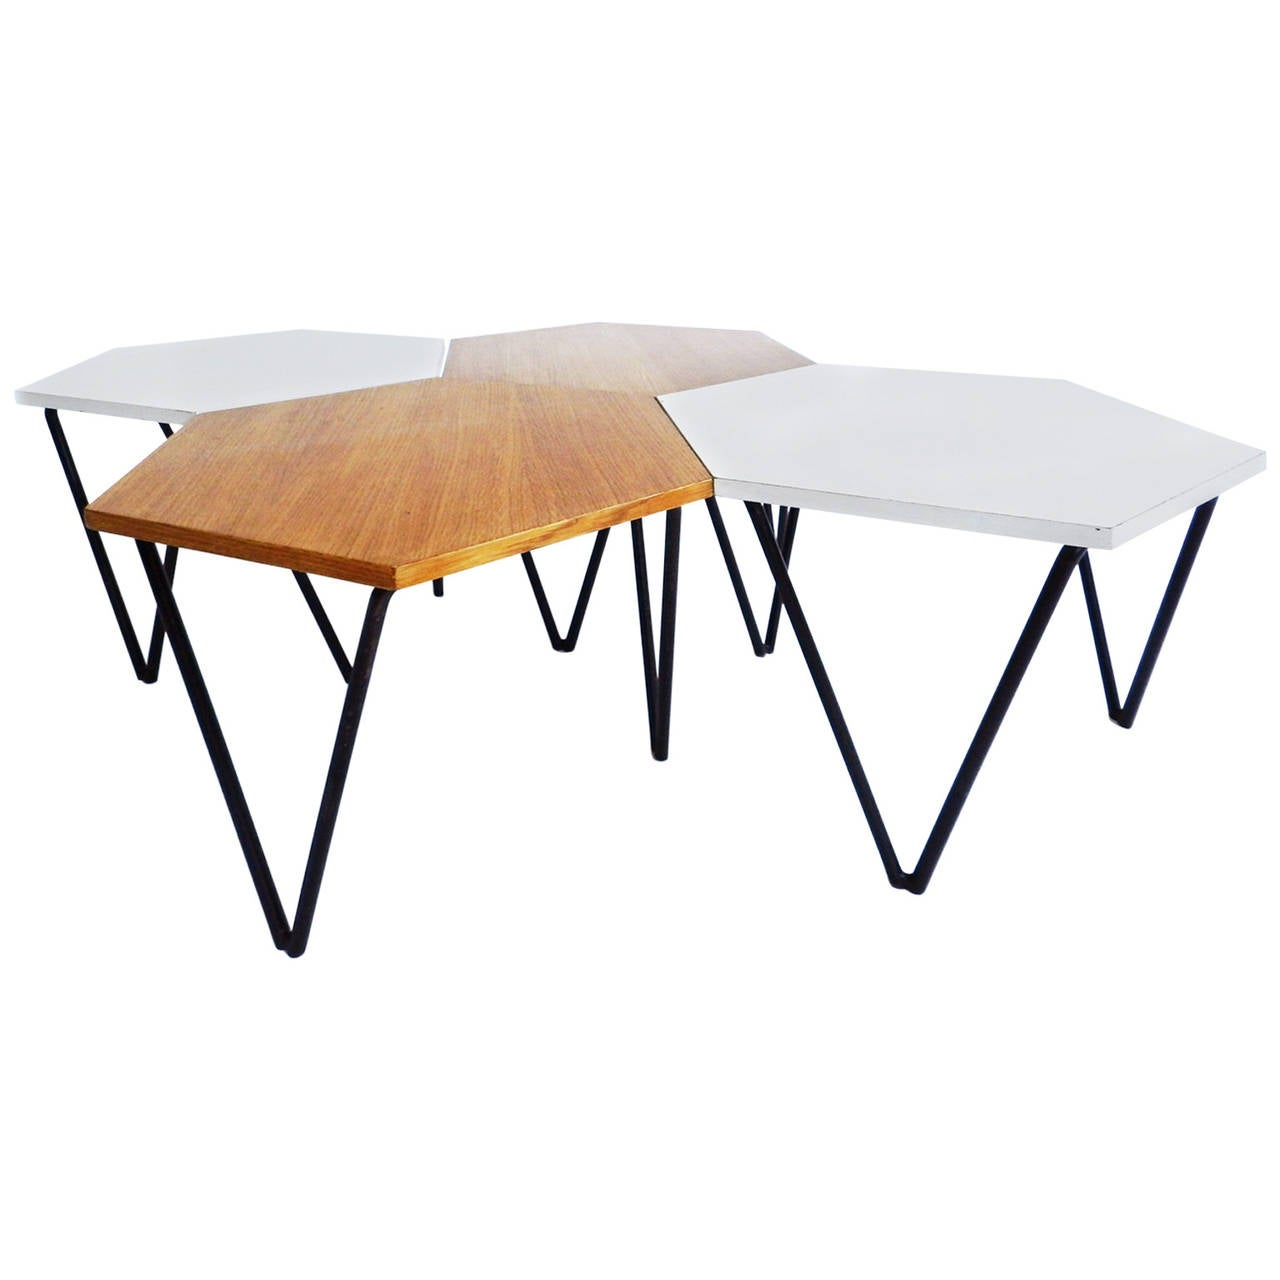 Design Modular Coffee Table set of 4 gio ponti laminated and wood modular coffee tables for isa 1